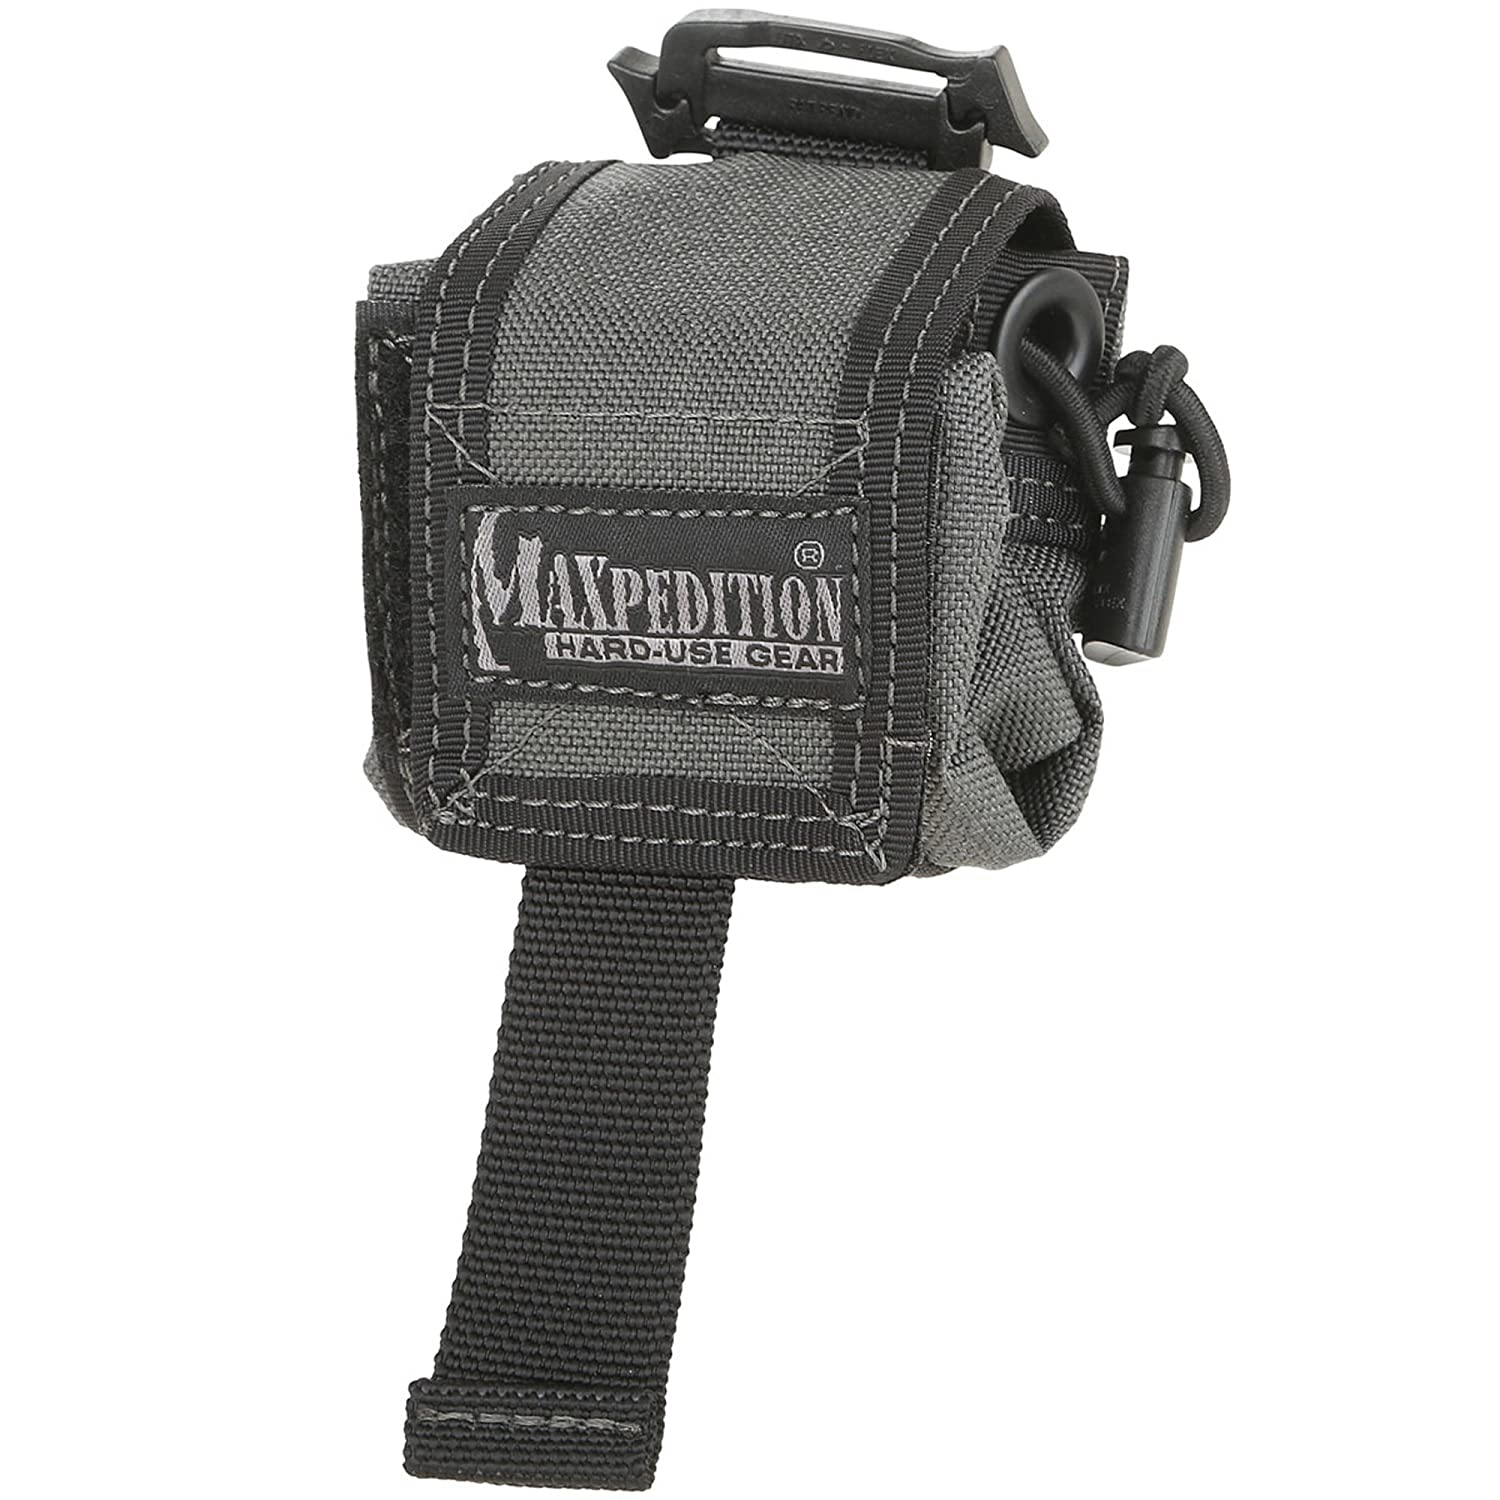 Maxpedition MXB Zaino da Escursionismo Unisex Adultos multicolor un tamaño